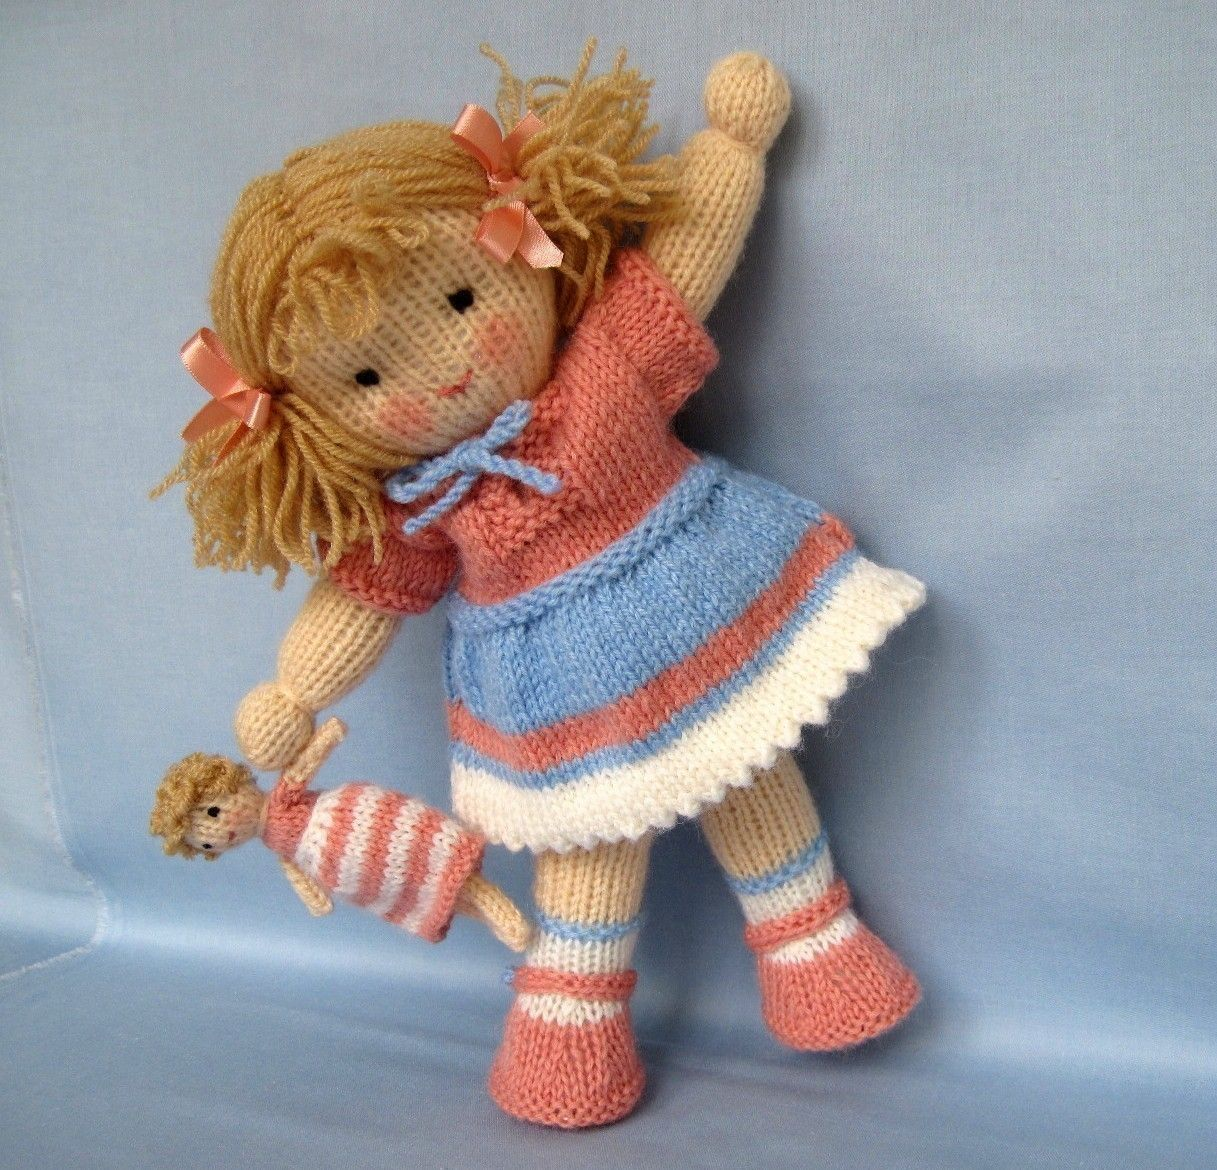 Knitting Patterns Toys : Lulu and little doll knitting pattern - INSTANT DOWNLOAD Knitting patterns,...